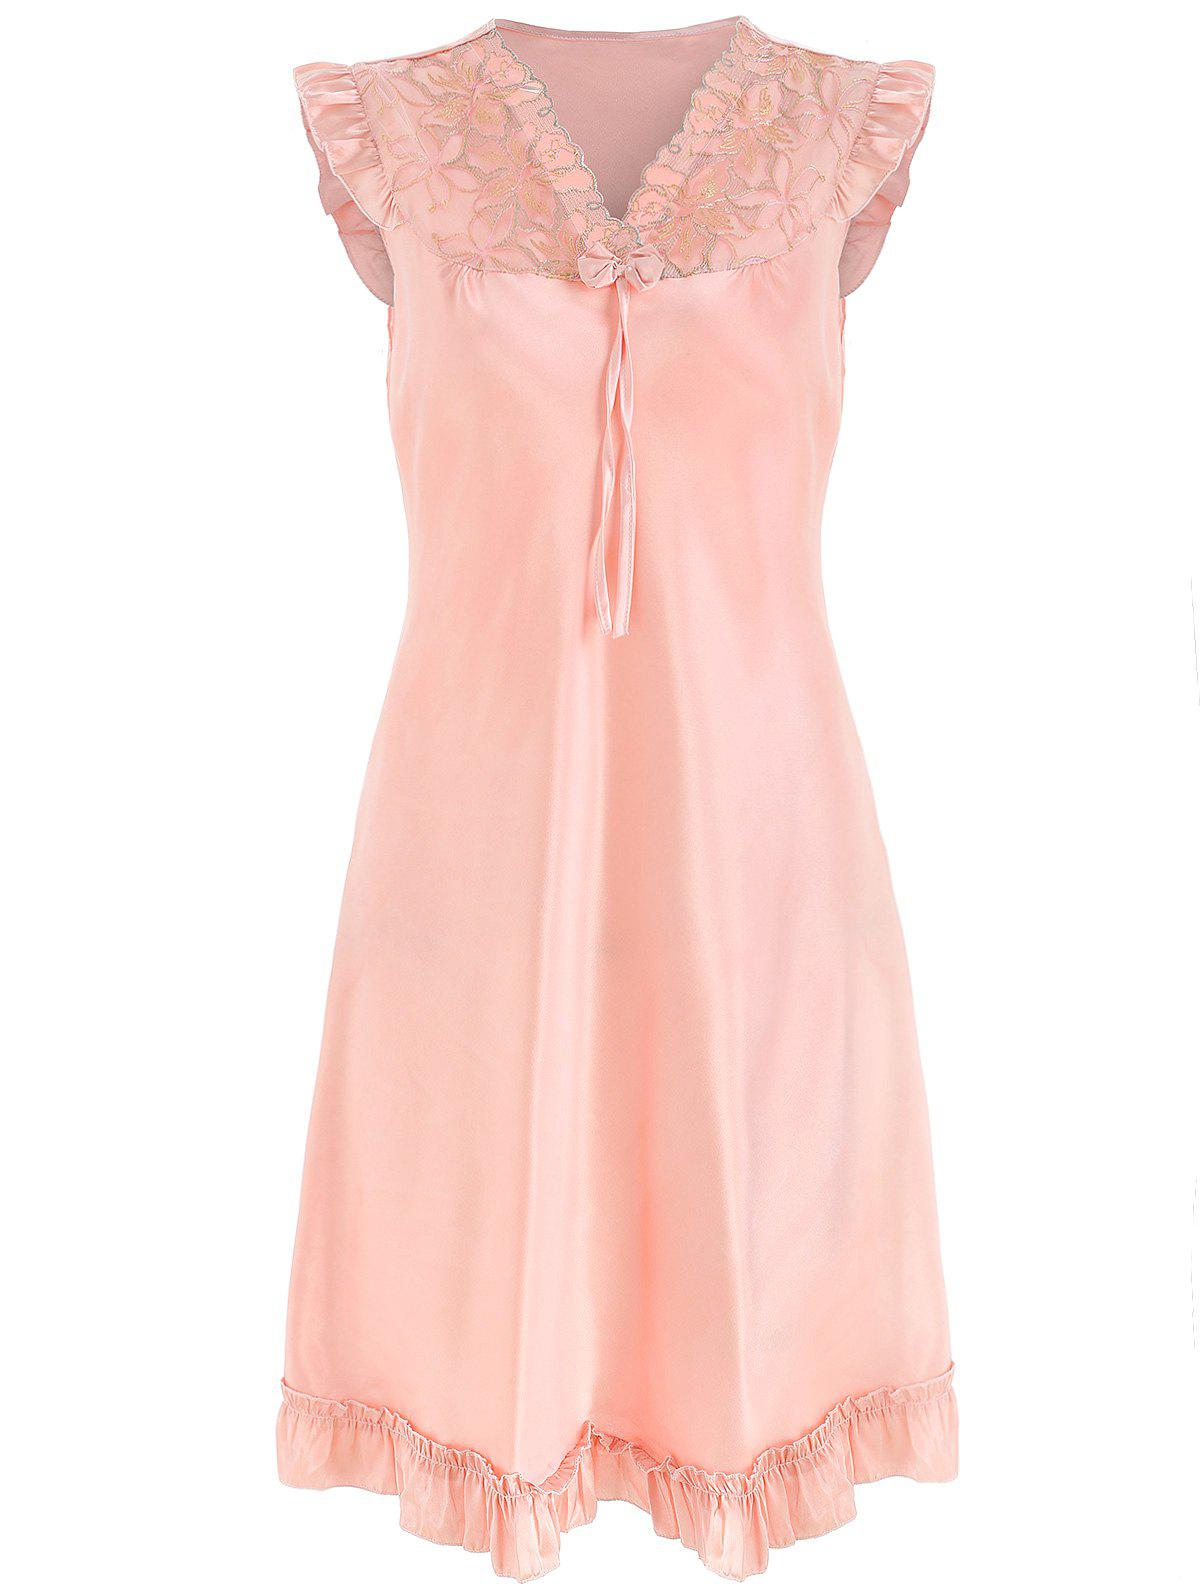 Trendy Bowknot Lace Panel Satin Sleeping Dress